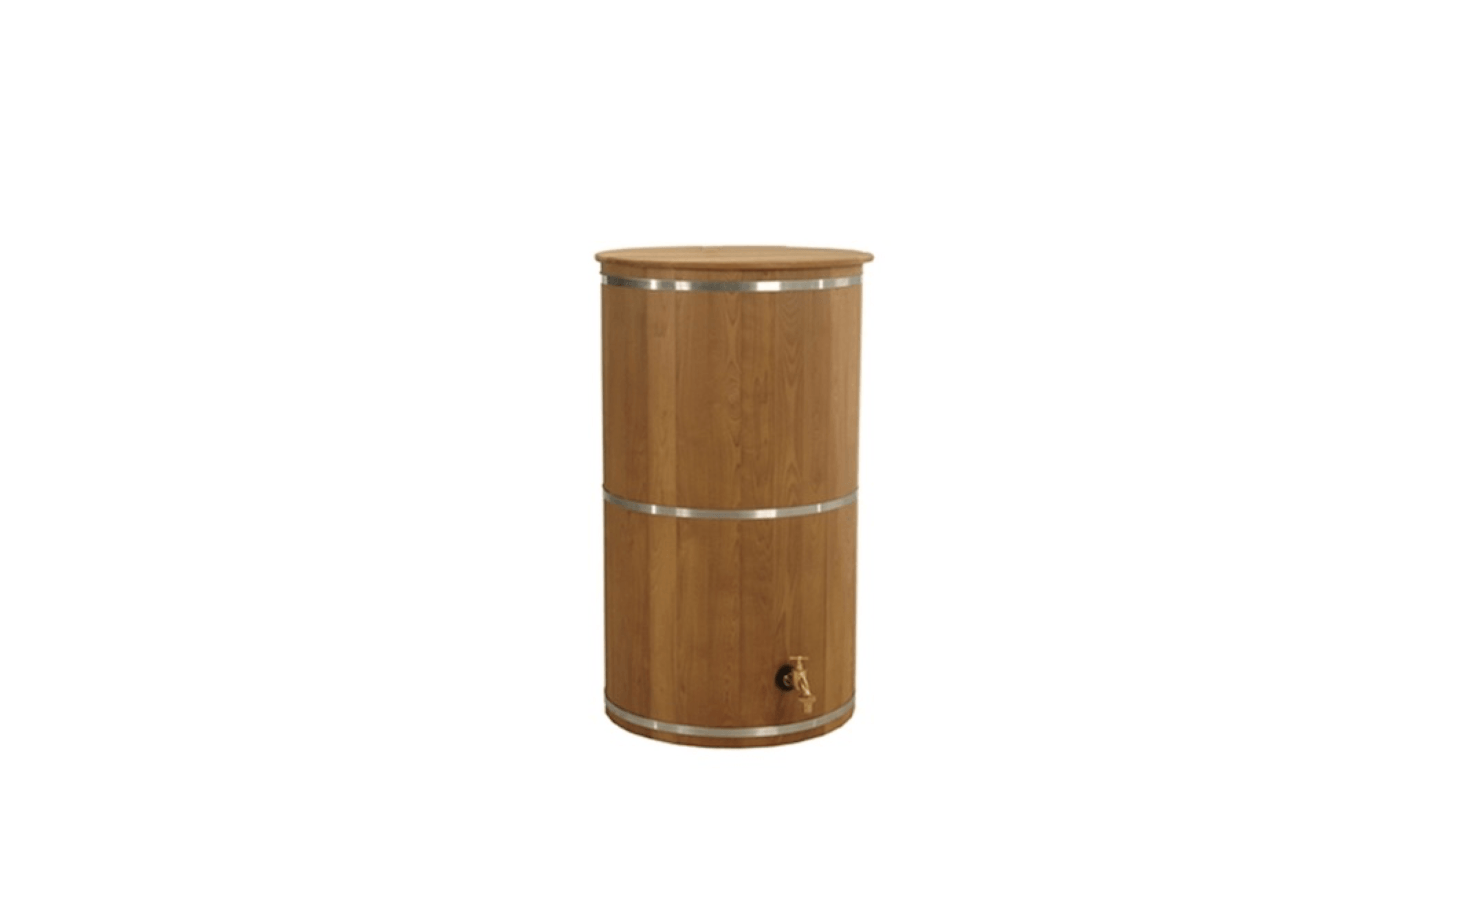 A 67-gallon Wooden Rain Barrel made of dried spruce wood has a brass tap and is $4 at Eco-Outfitter.